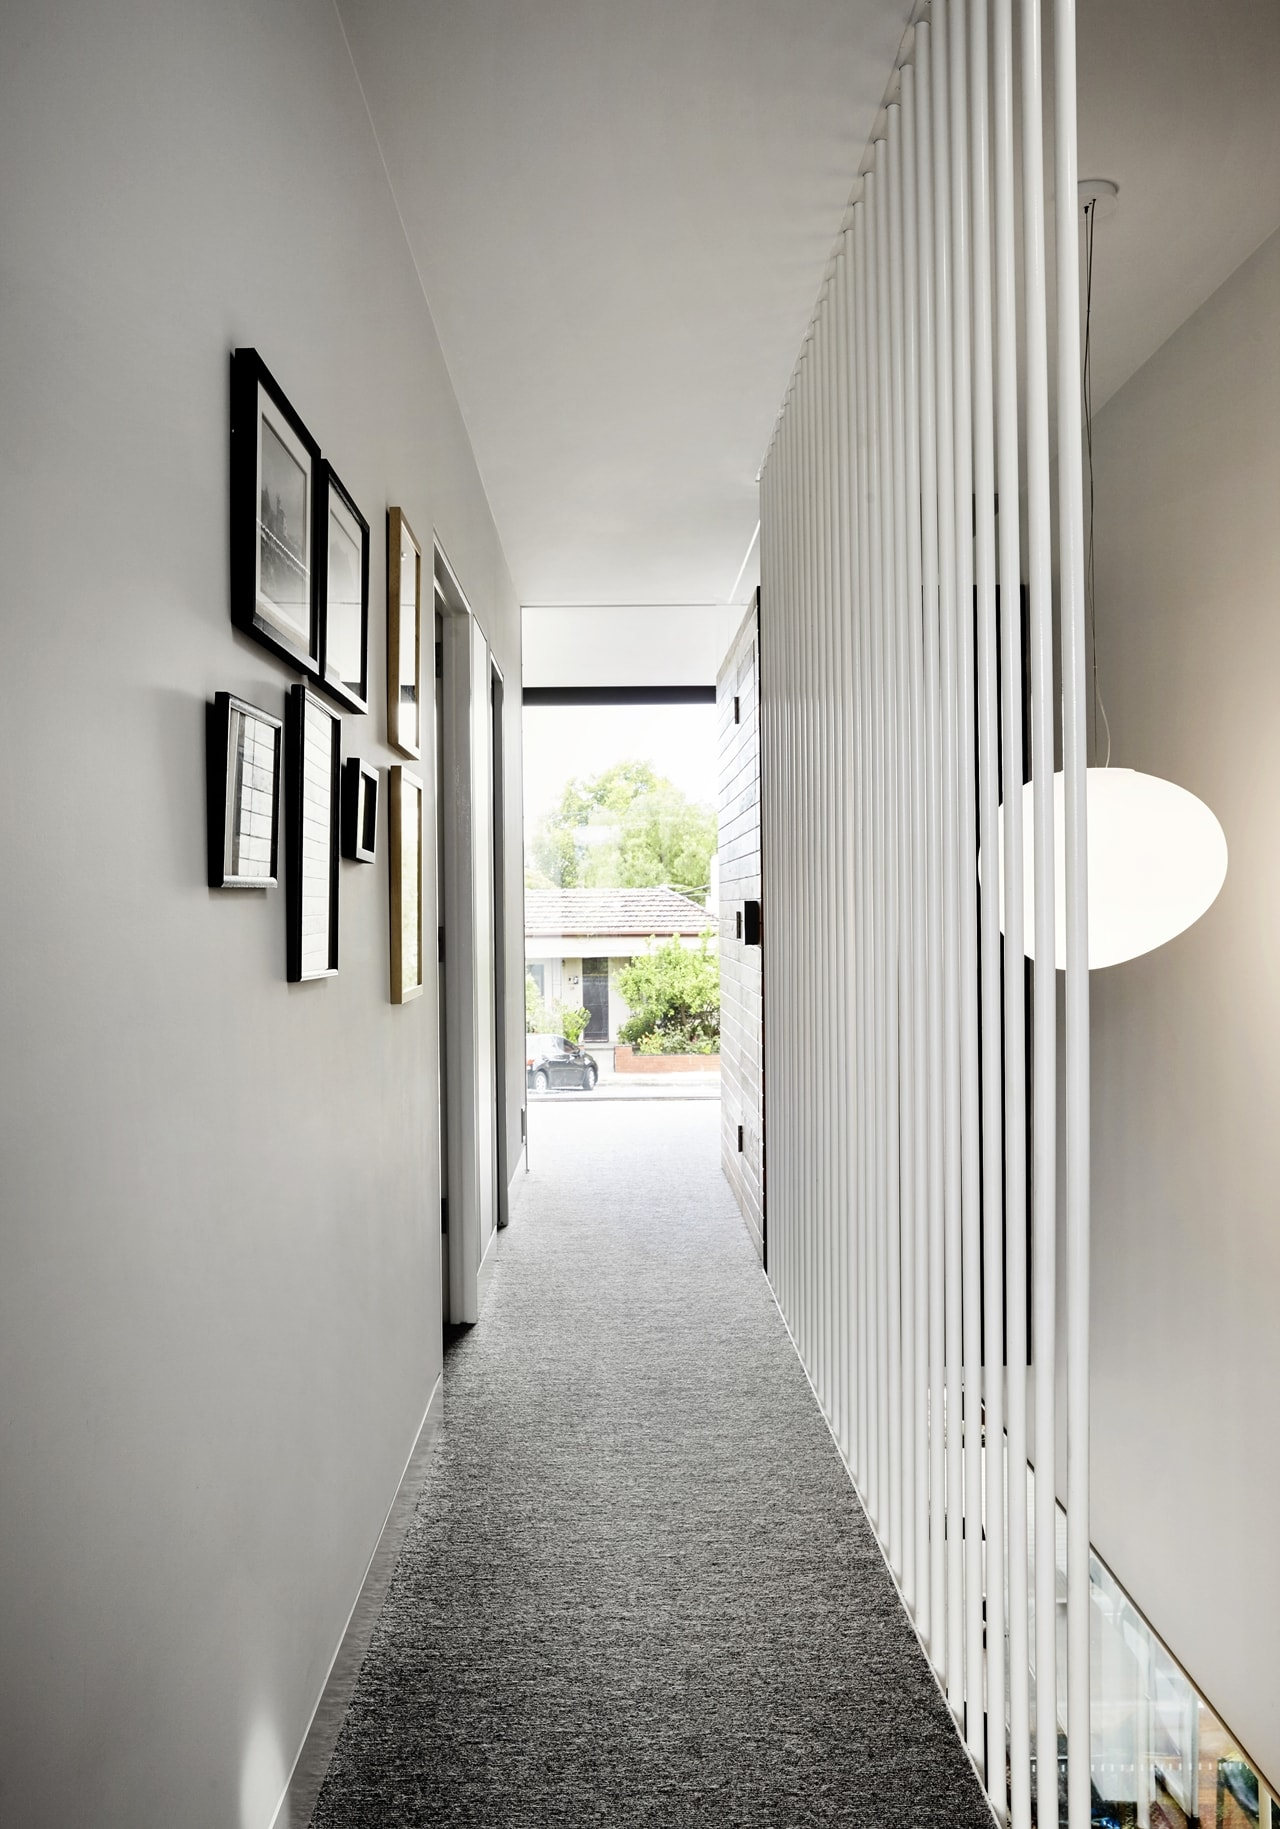 Narrow hallway by Austin Maynard Architects